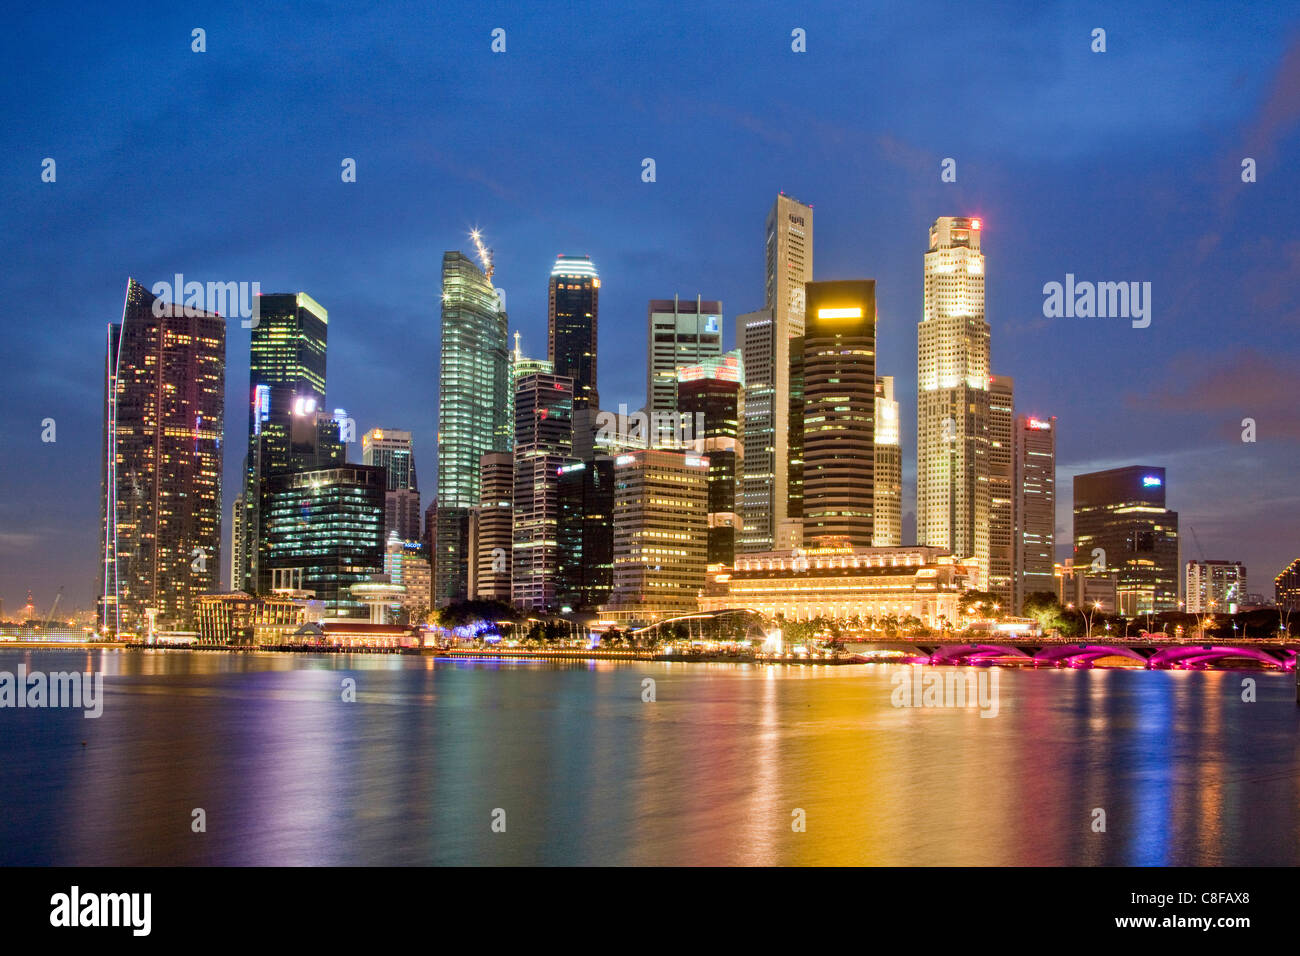 Singapore, Asia, Skyline, blocks of flats, high-rise buildings, at night, lights, illumination, evening, reflection, - Stock Image